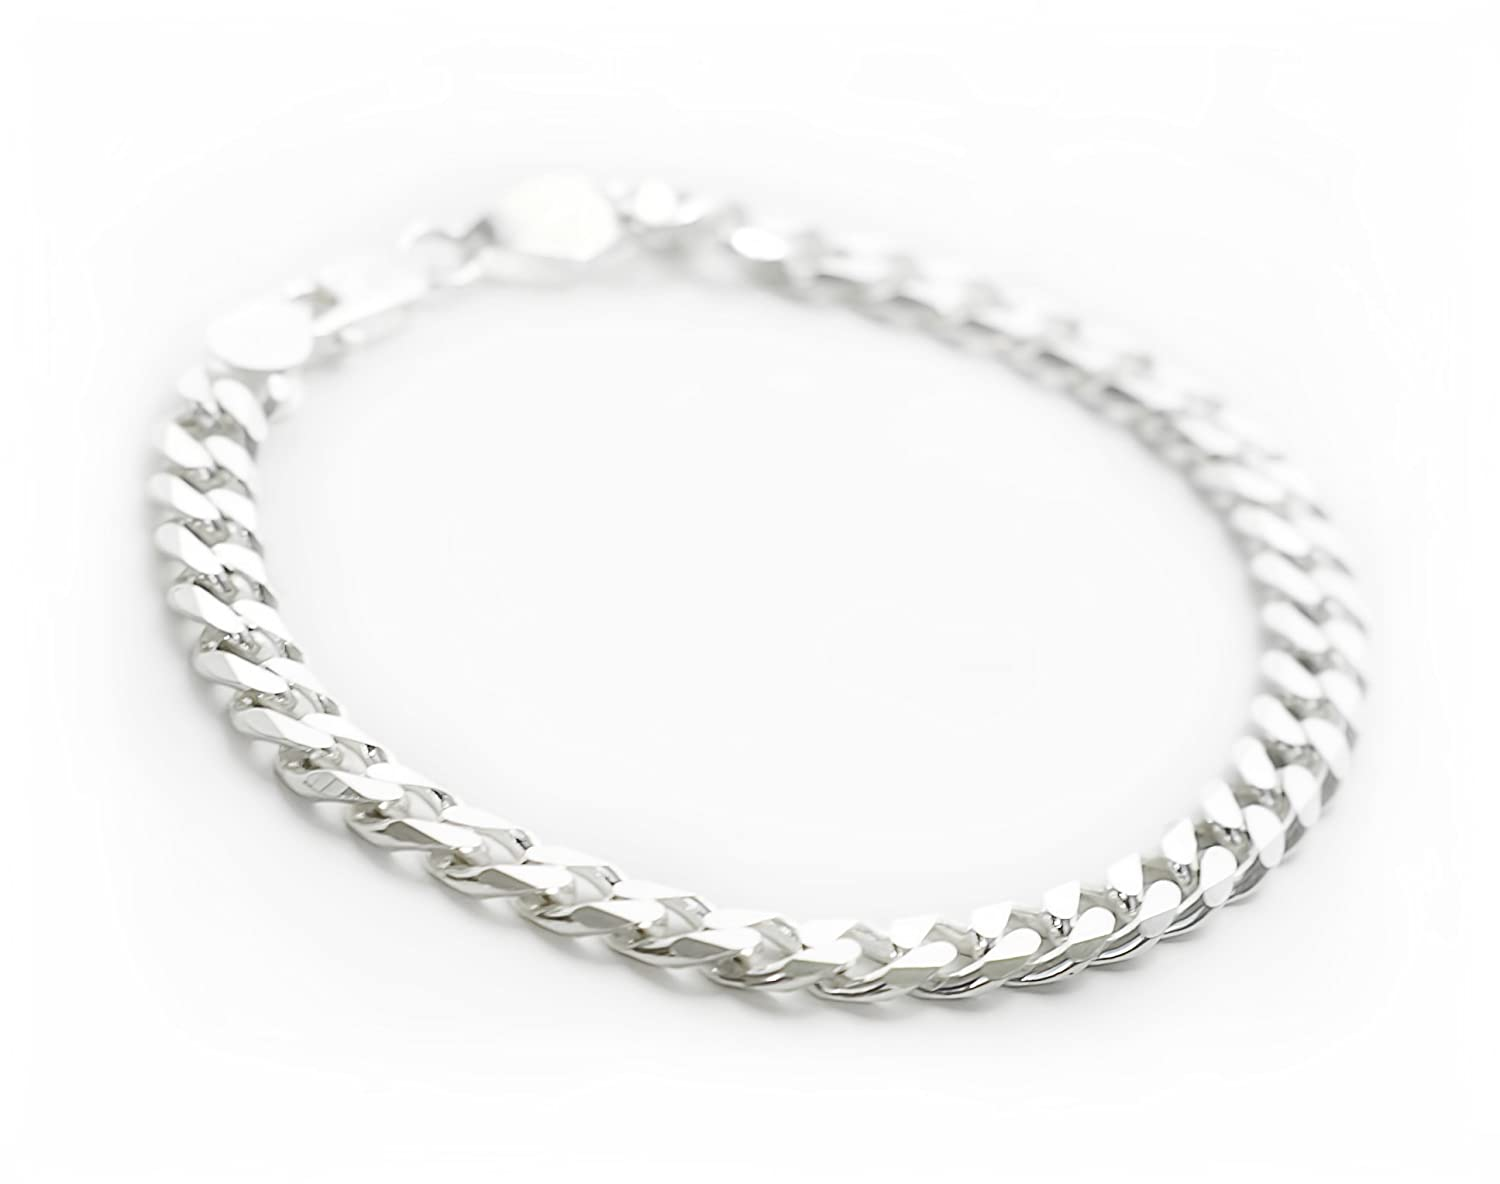 jewelry long ball tiffany silver bracelets mm wid fit hardwear constrain ed hei sterling m fmt id and co in bead bracelet